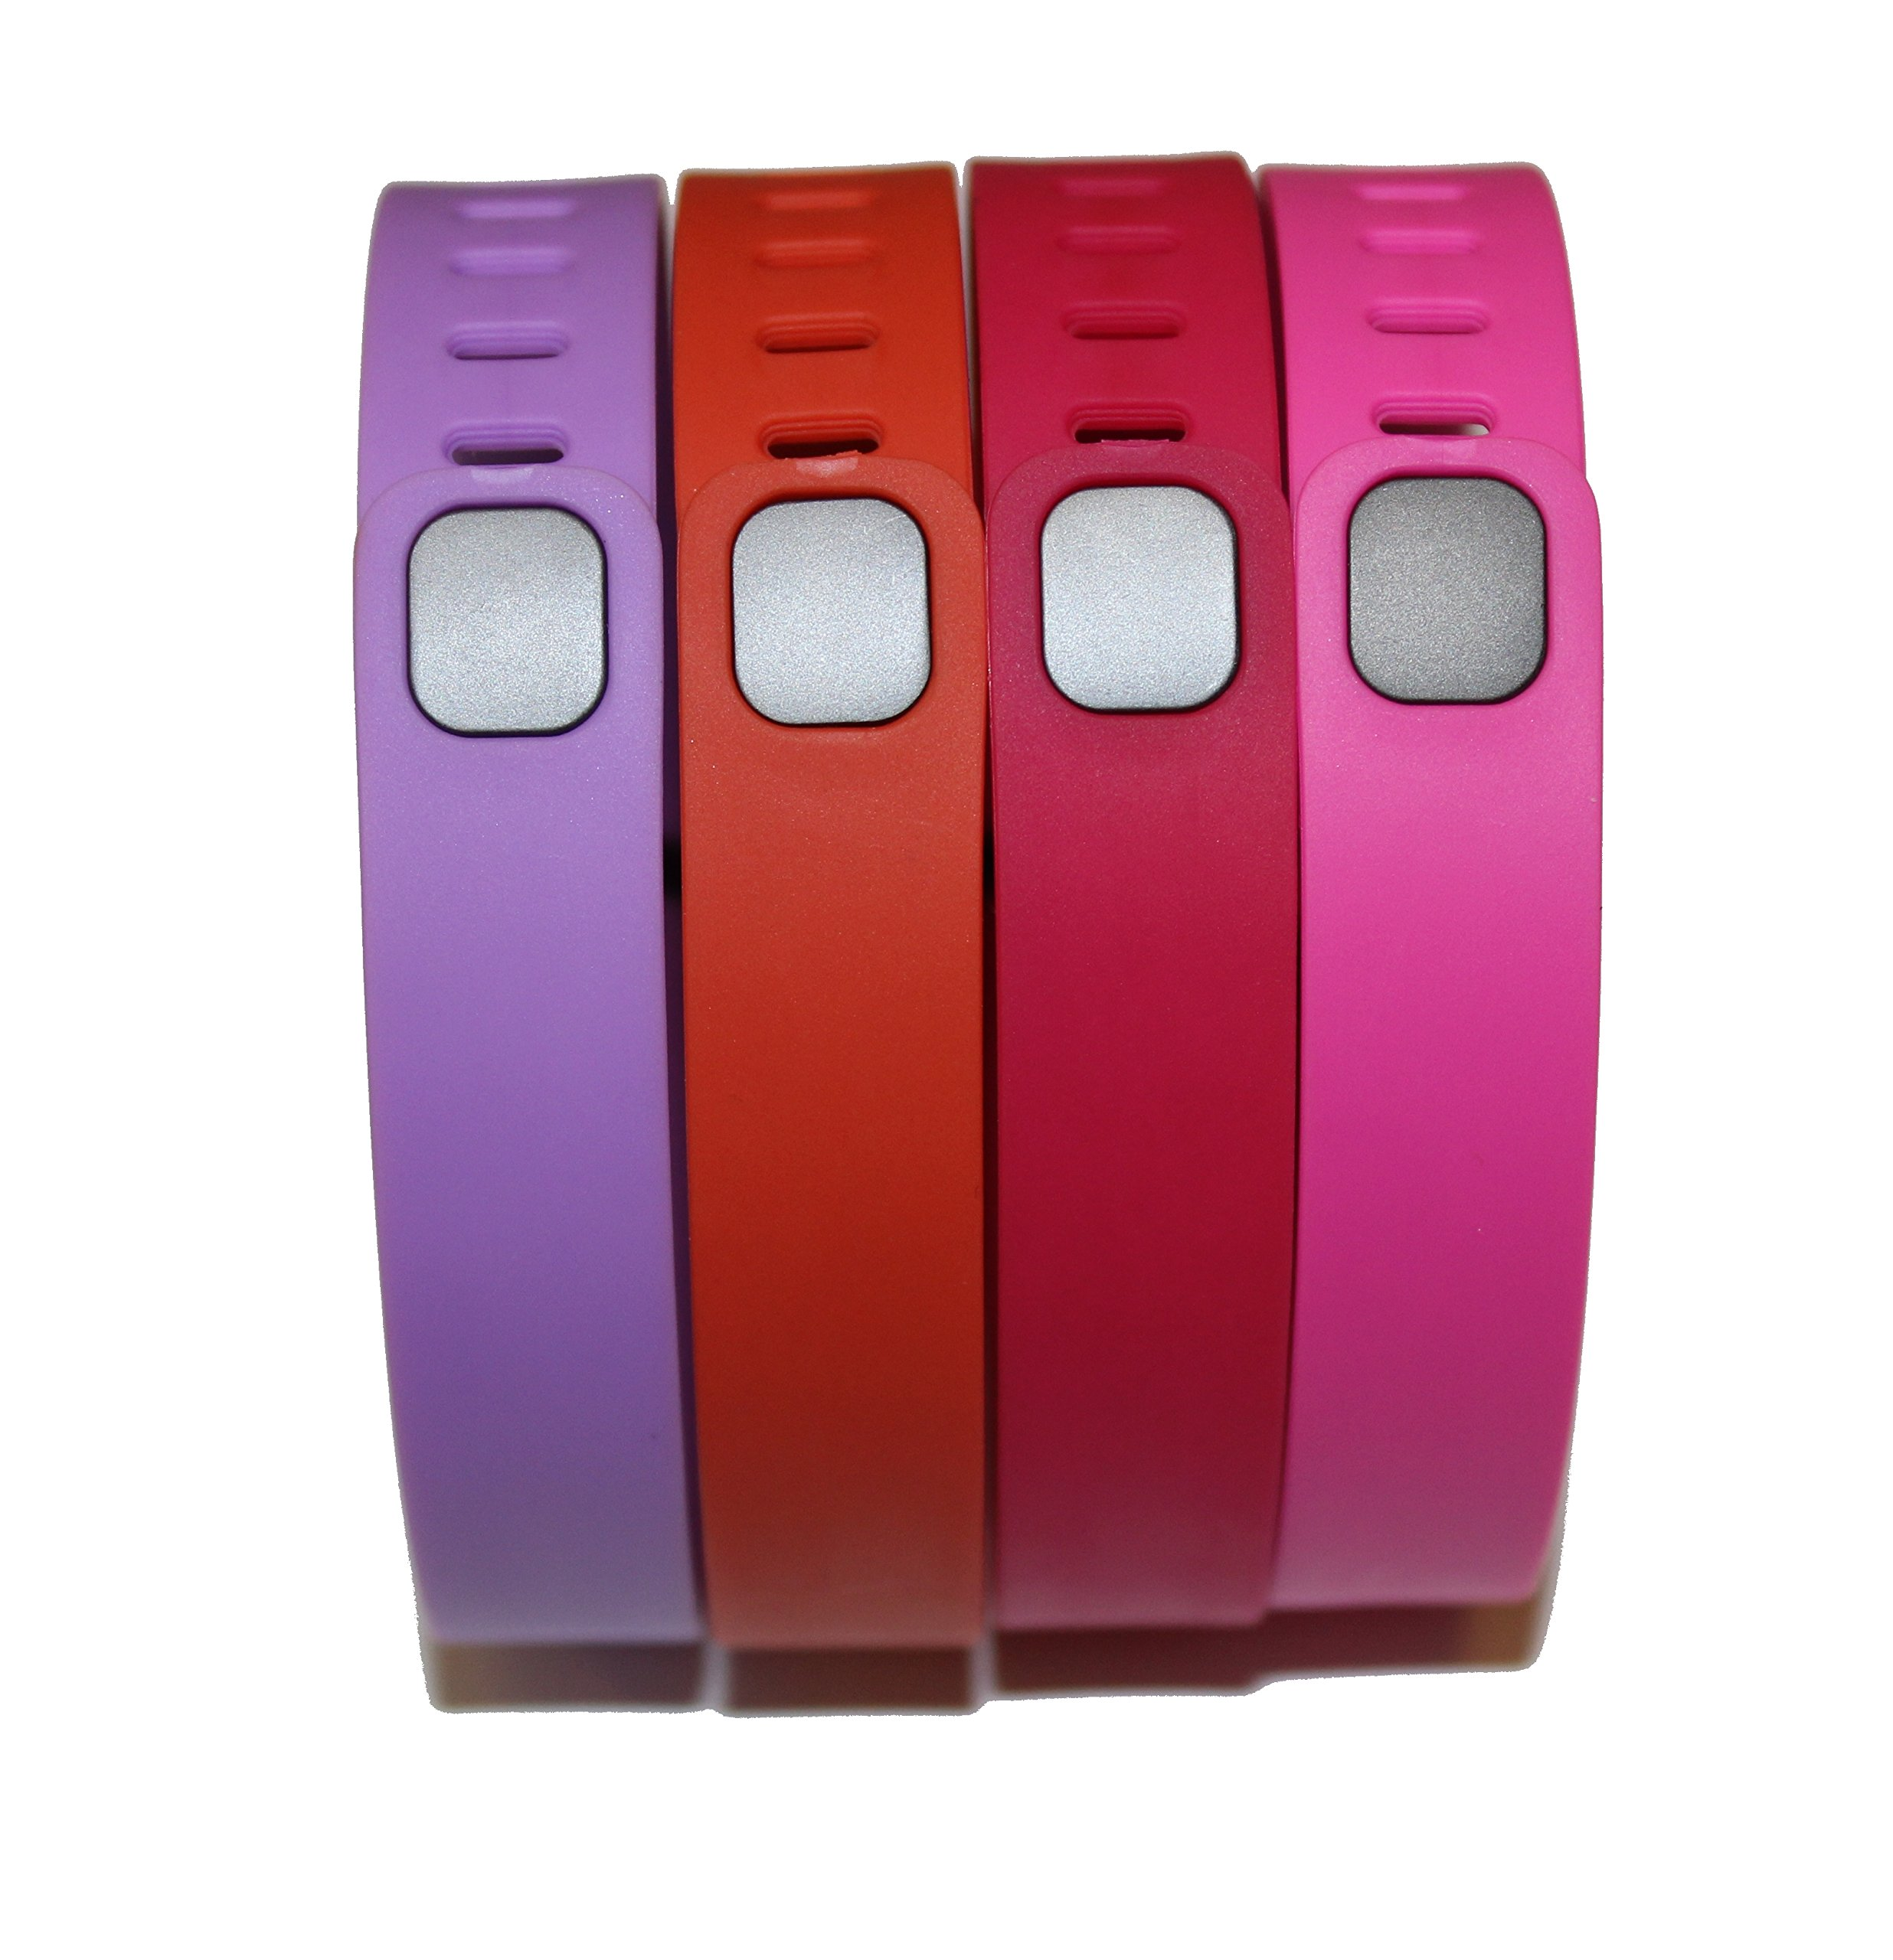 Set 4 Large Size 1 Violet 1 Tangerine 1 Rose/Fuchsia 1 Pink/Purple Rubber Bands (With Clasps) for Fitbit Flex Bracelet Tracking Exercise Activity Sport+1 Free Gift Waterproof Sunglasses, Eyeglasses Soft Pouch Bag Case/ Random Color/